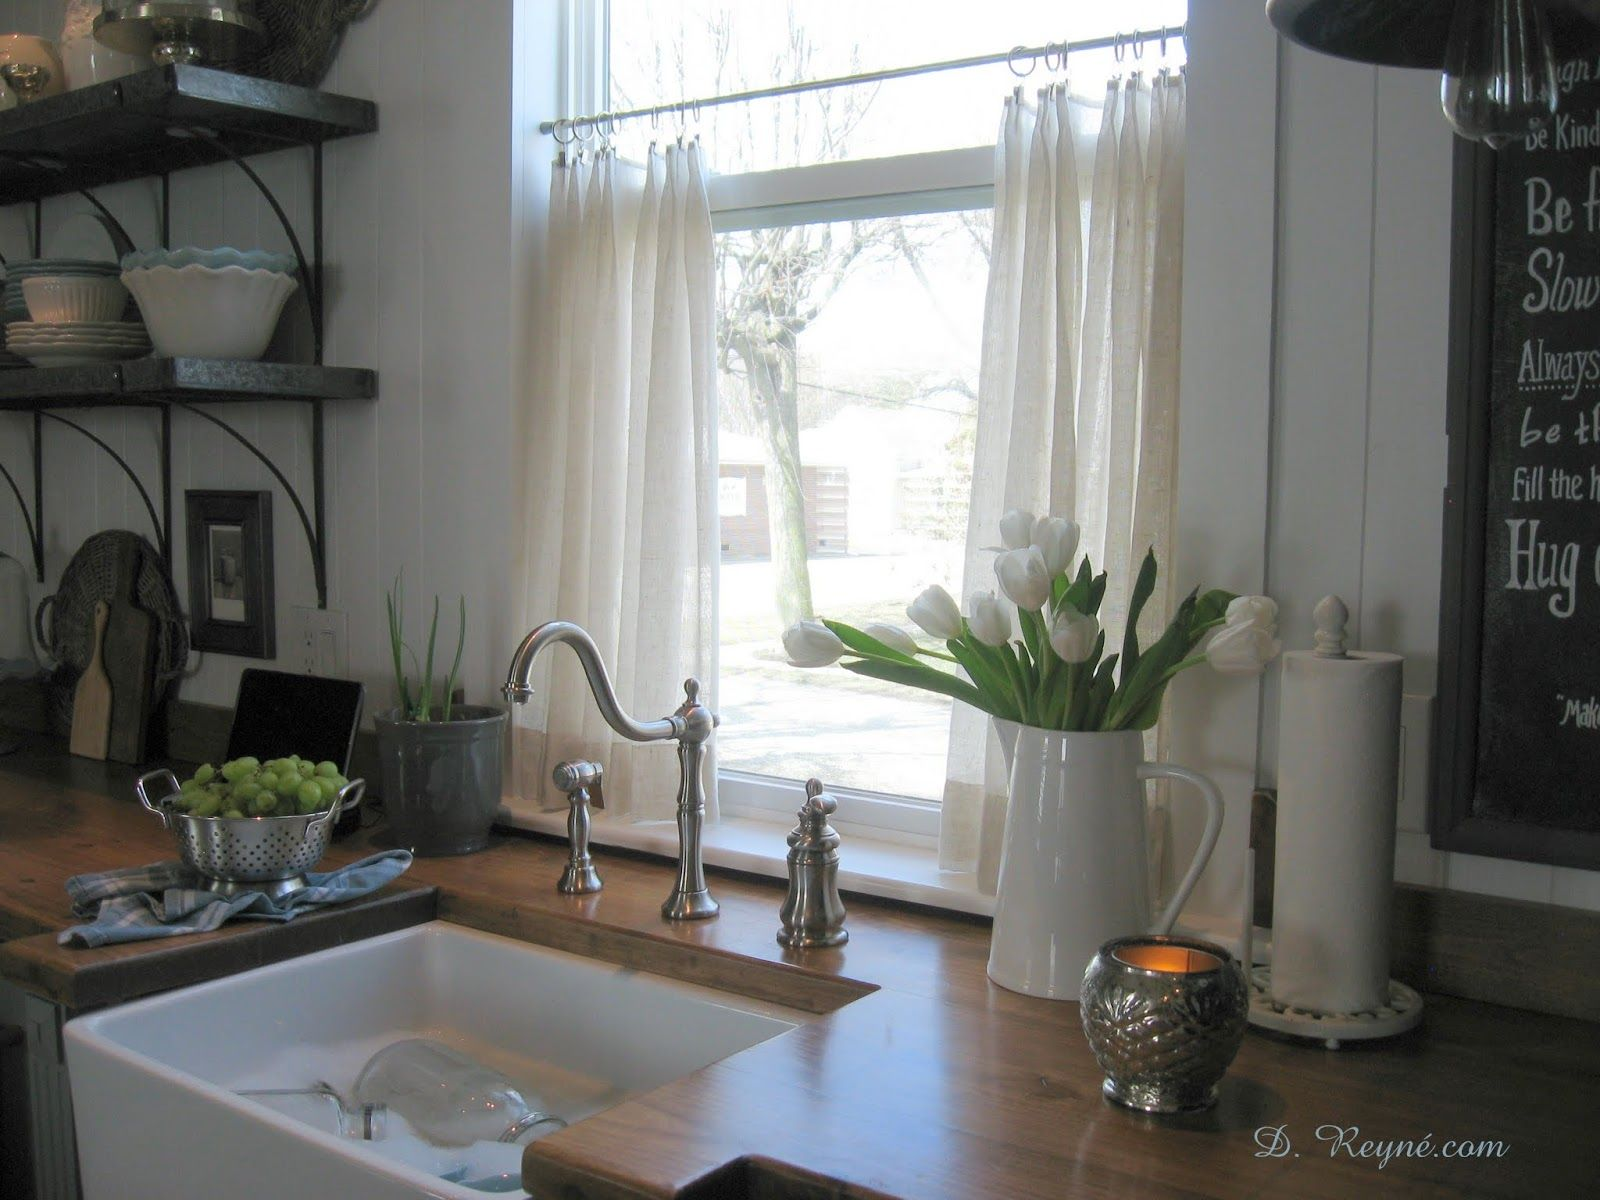 donna reyne: Kitchen Café Curtains | Home Decor | Pinterest | Café ...